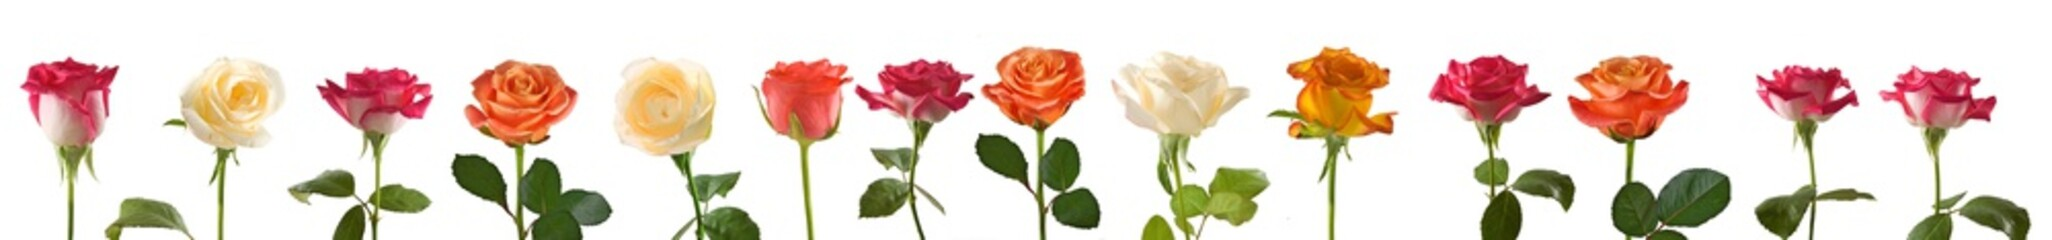 isolated image of flowers closeup